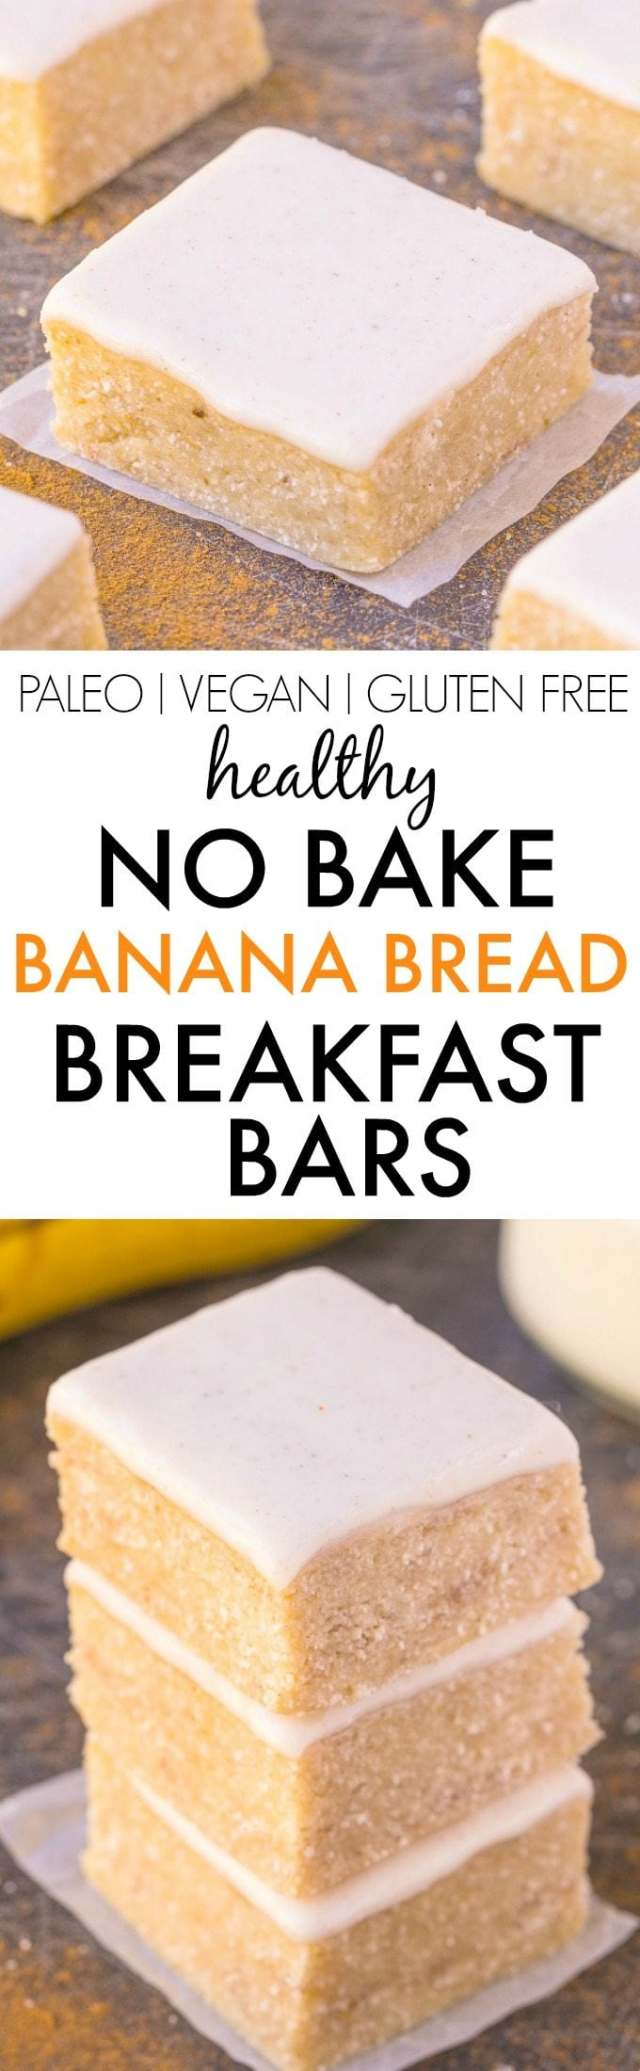 Healthy NO BAKE Banana Bread Breakfast Bars- Thick, chewy and JUST like a blondie, but with NO butter, oil, grains or white sugar- It's PACKED with protein too! {vegan, gluten free, paleo recipe}- thebigmansworld.com